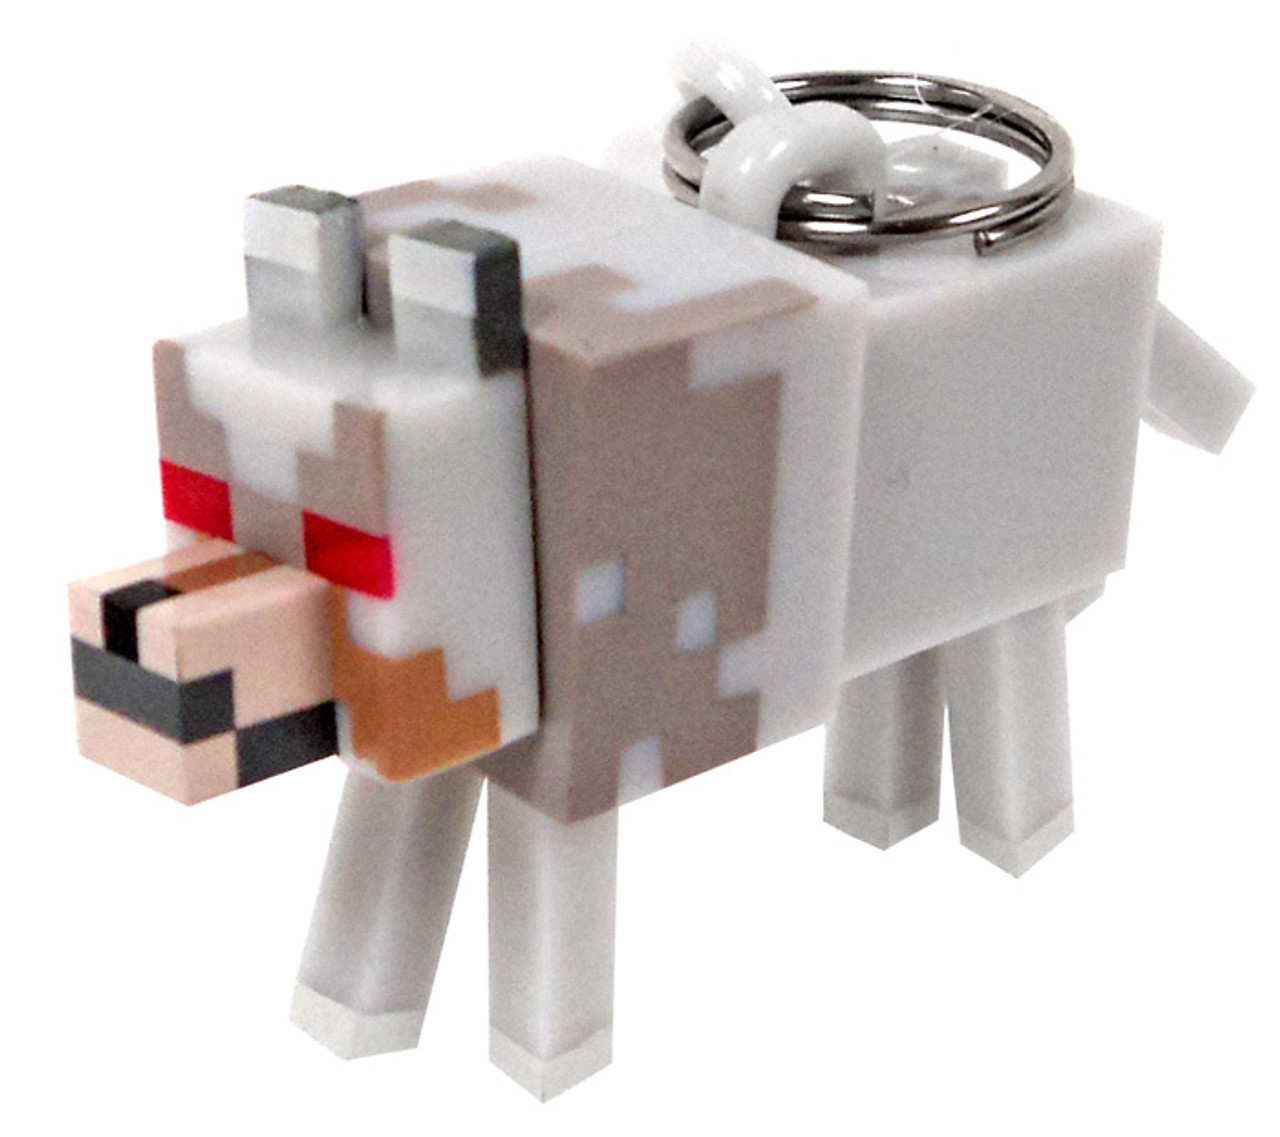 Can You Loose Your Dog In Minecraft